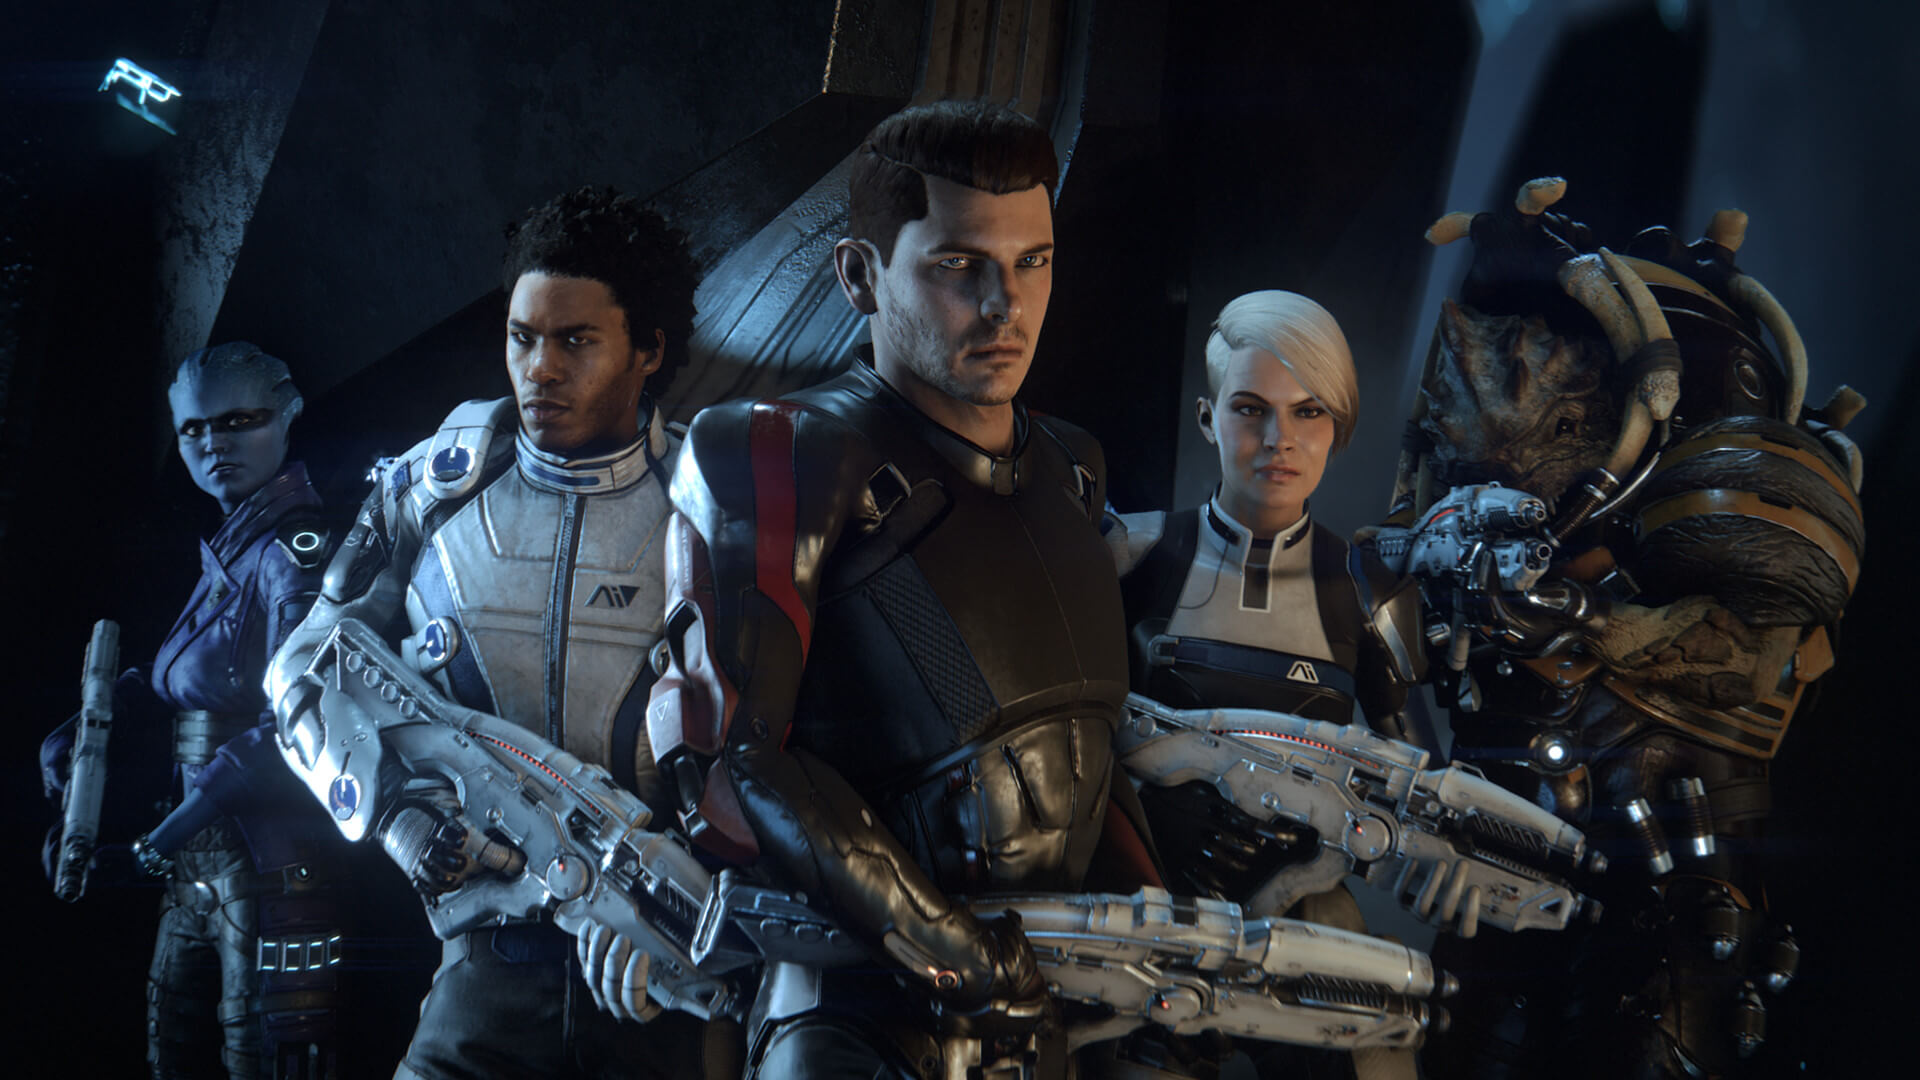 Mass Effect Andromeda is number 1 in latest UK charts